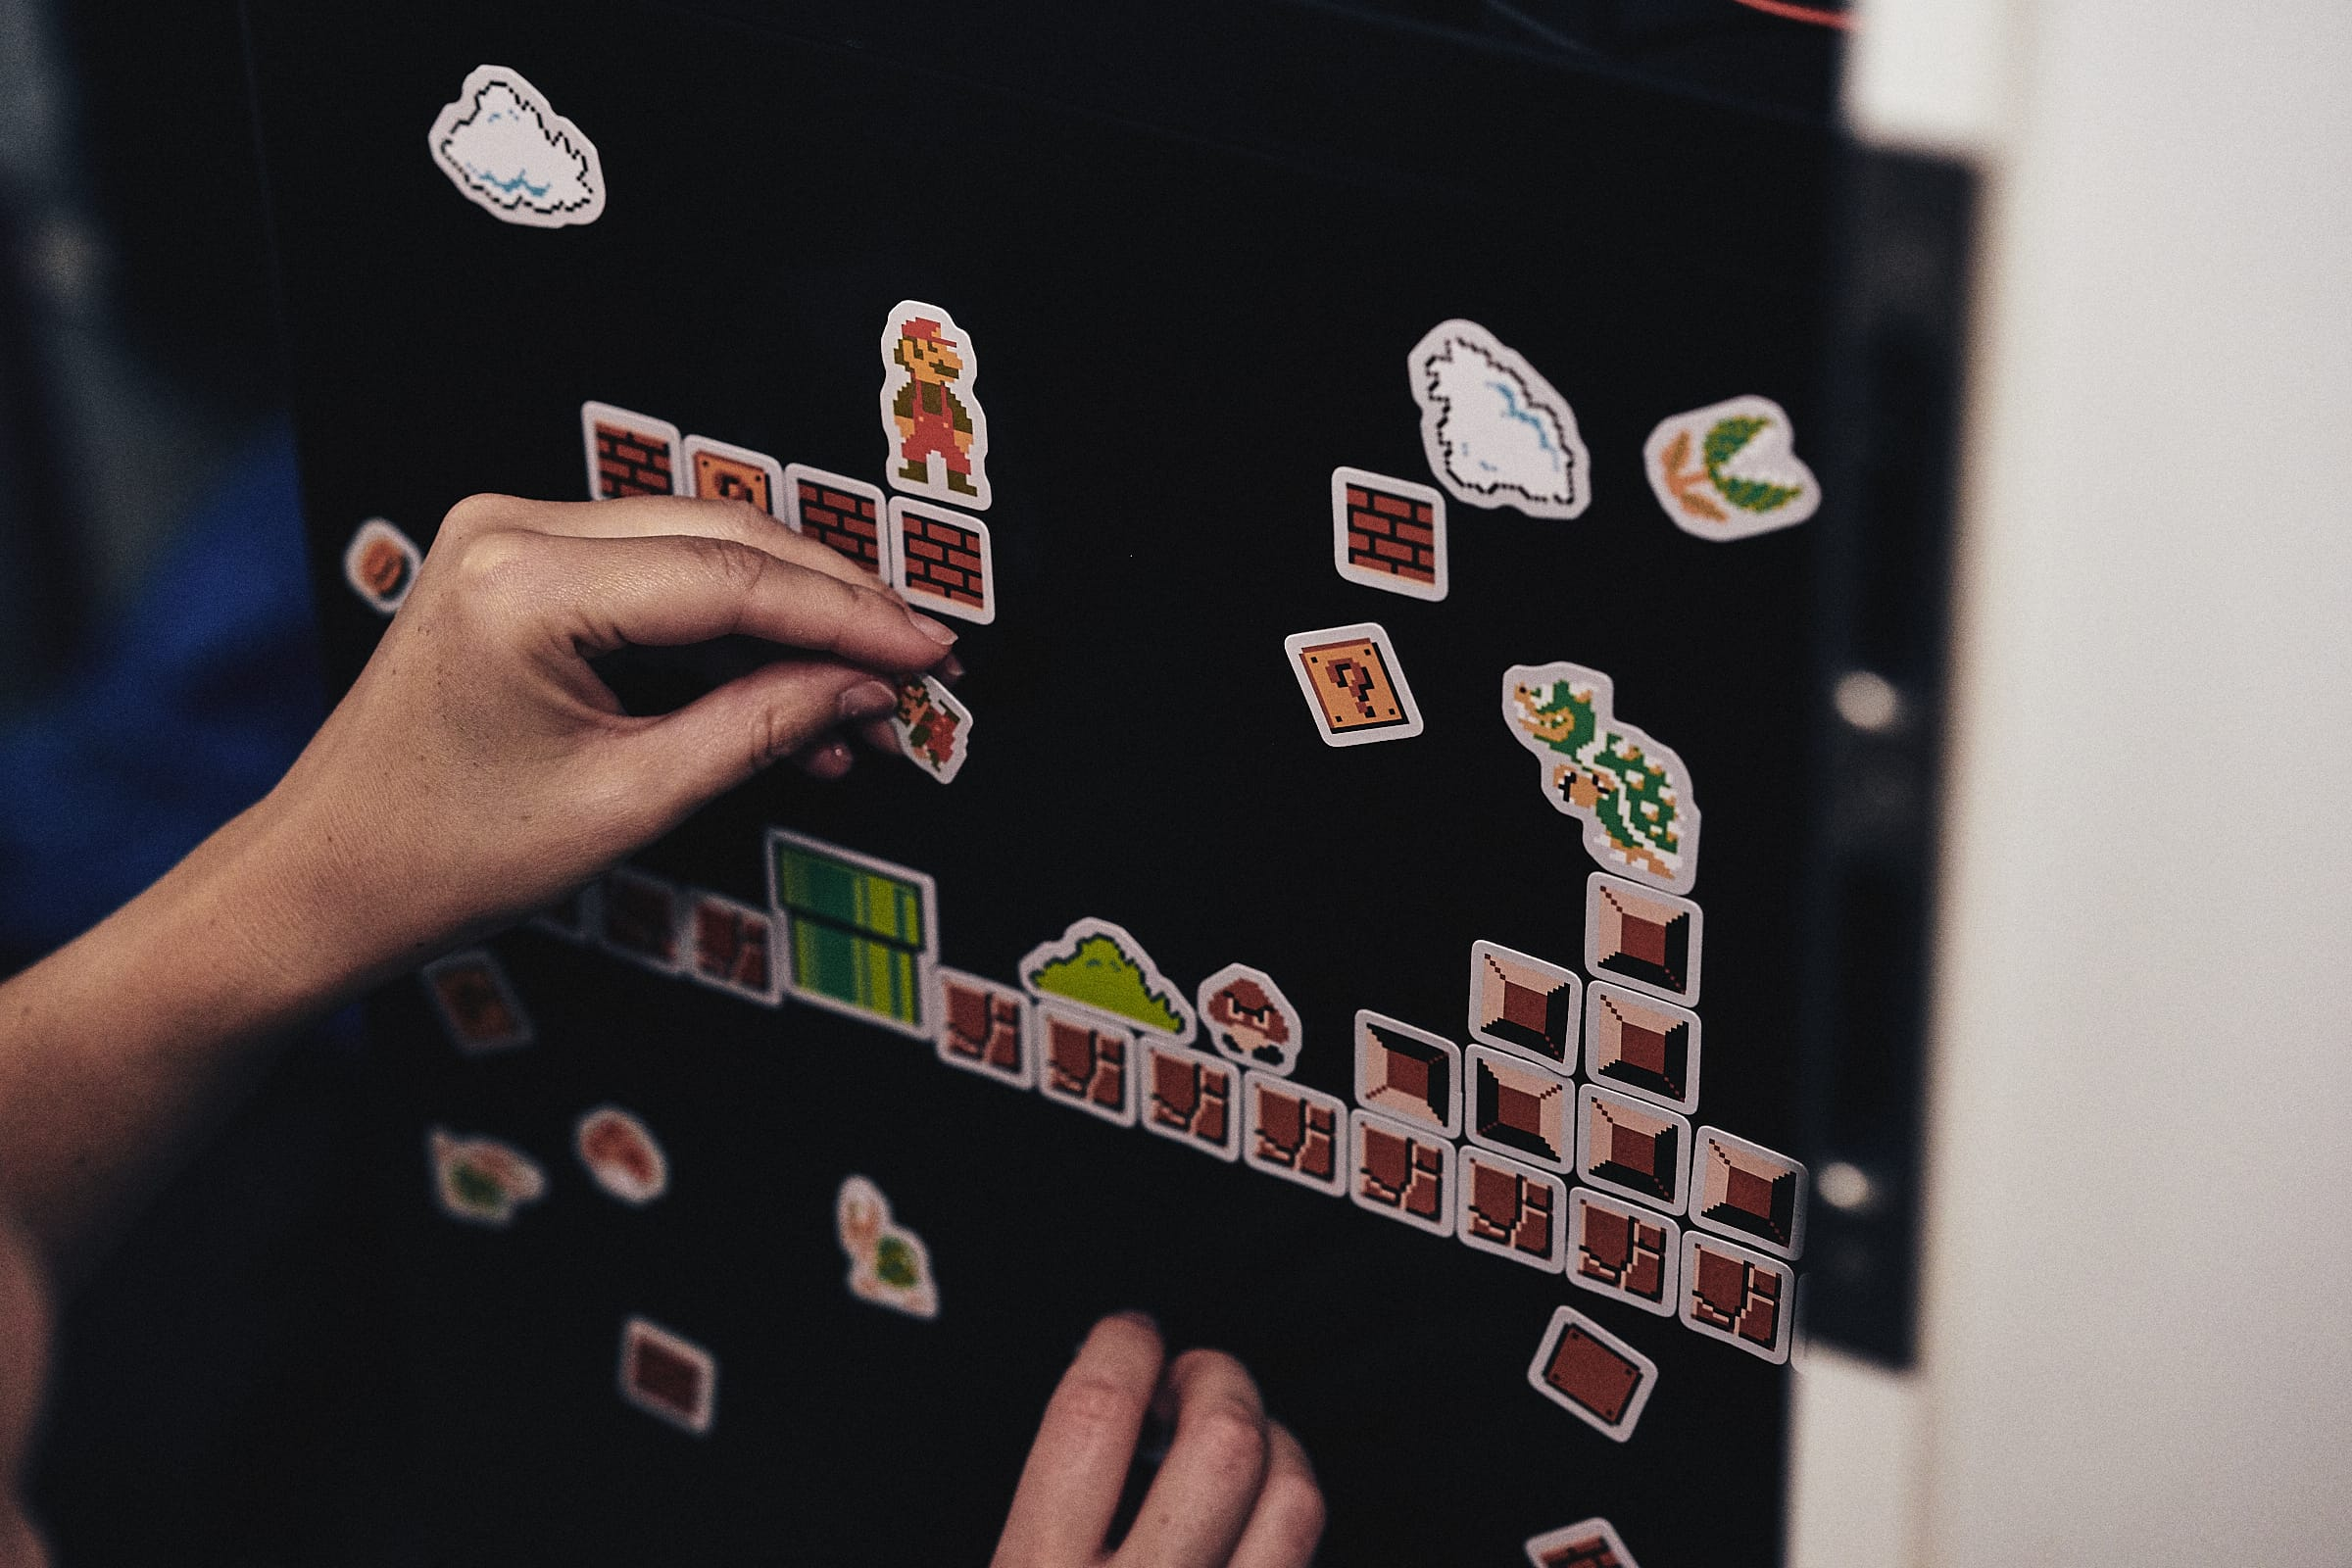 super-mario-maker-magnets-_dsc4255